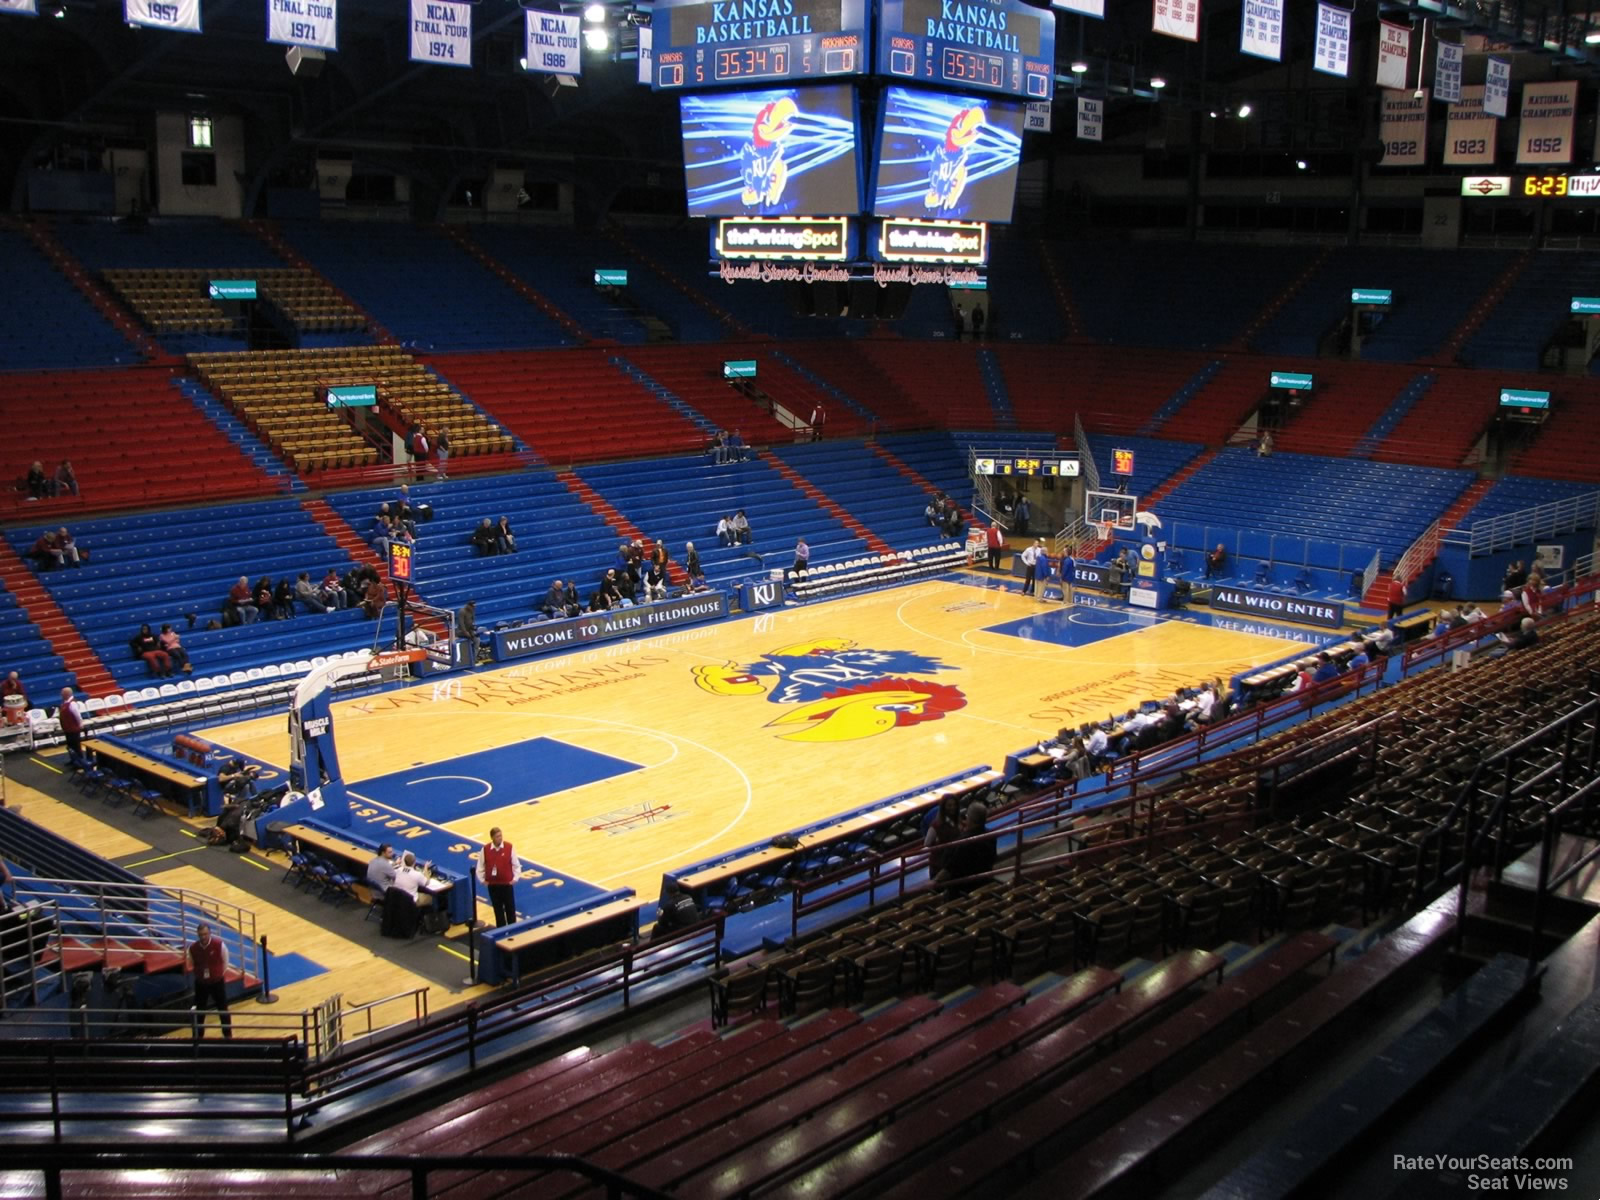 Seat View for Allen Fieldhouse Section 9A, Row 18